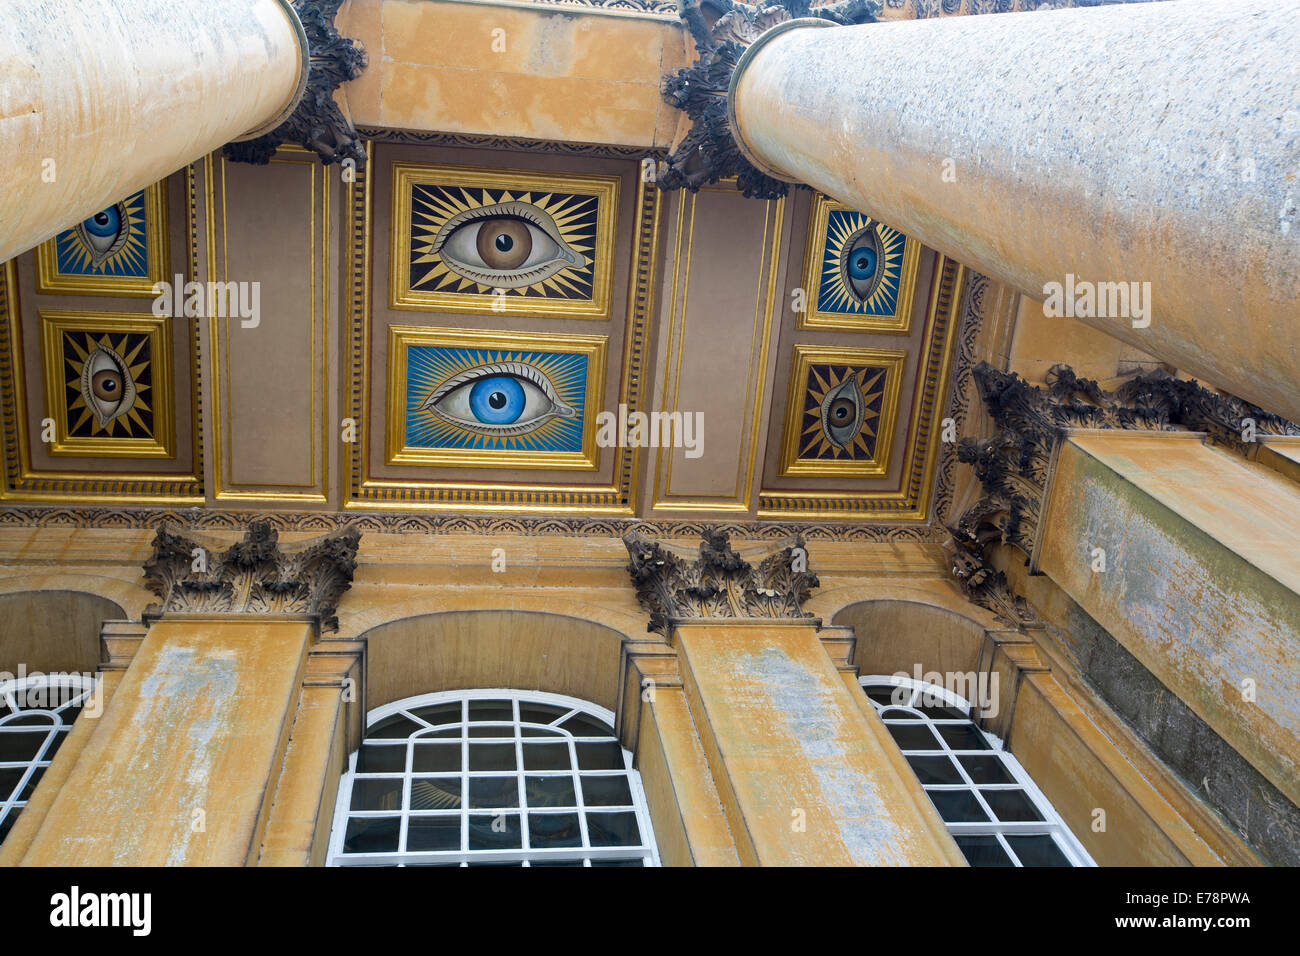 High ceiling painted with unusual and spectacular series of colourful eyes looking down at visitors at Blenheim - Stock Image